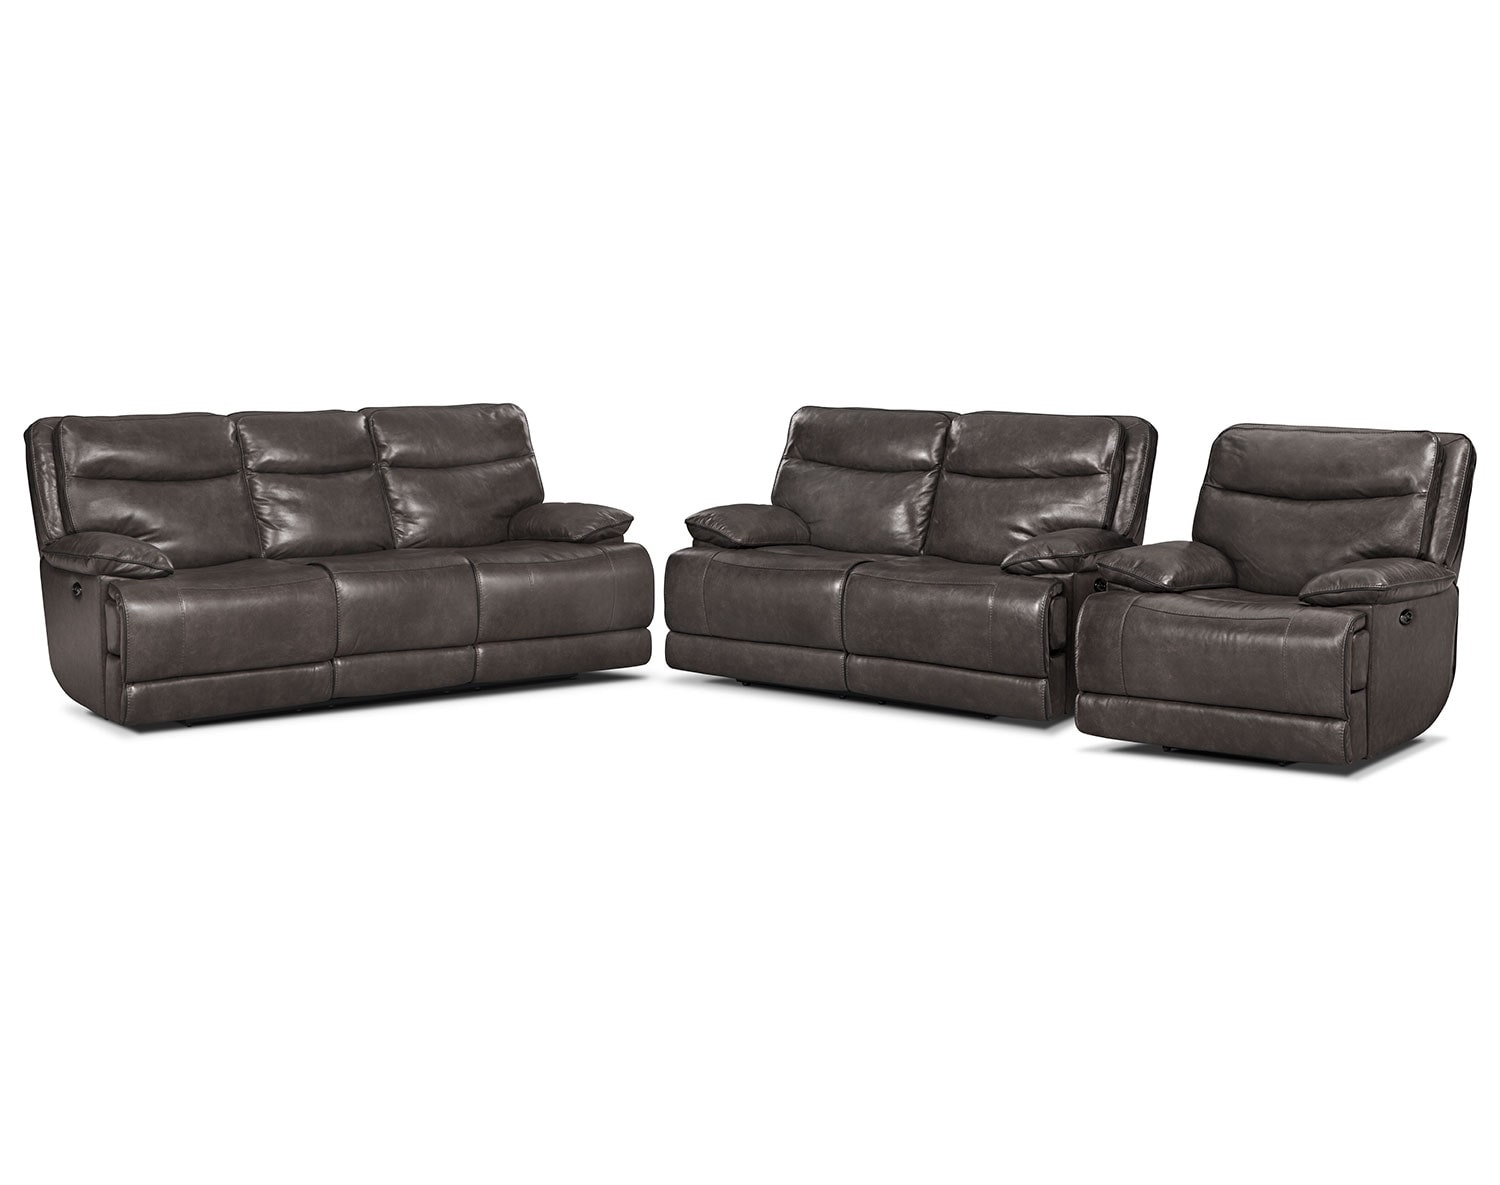 Leather Furniture Buying Guide Value City Furniture